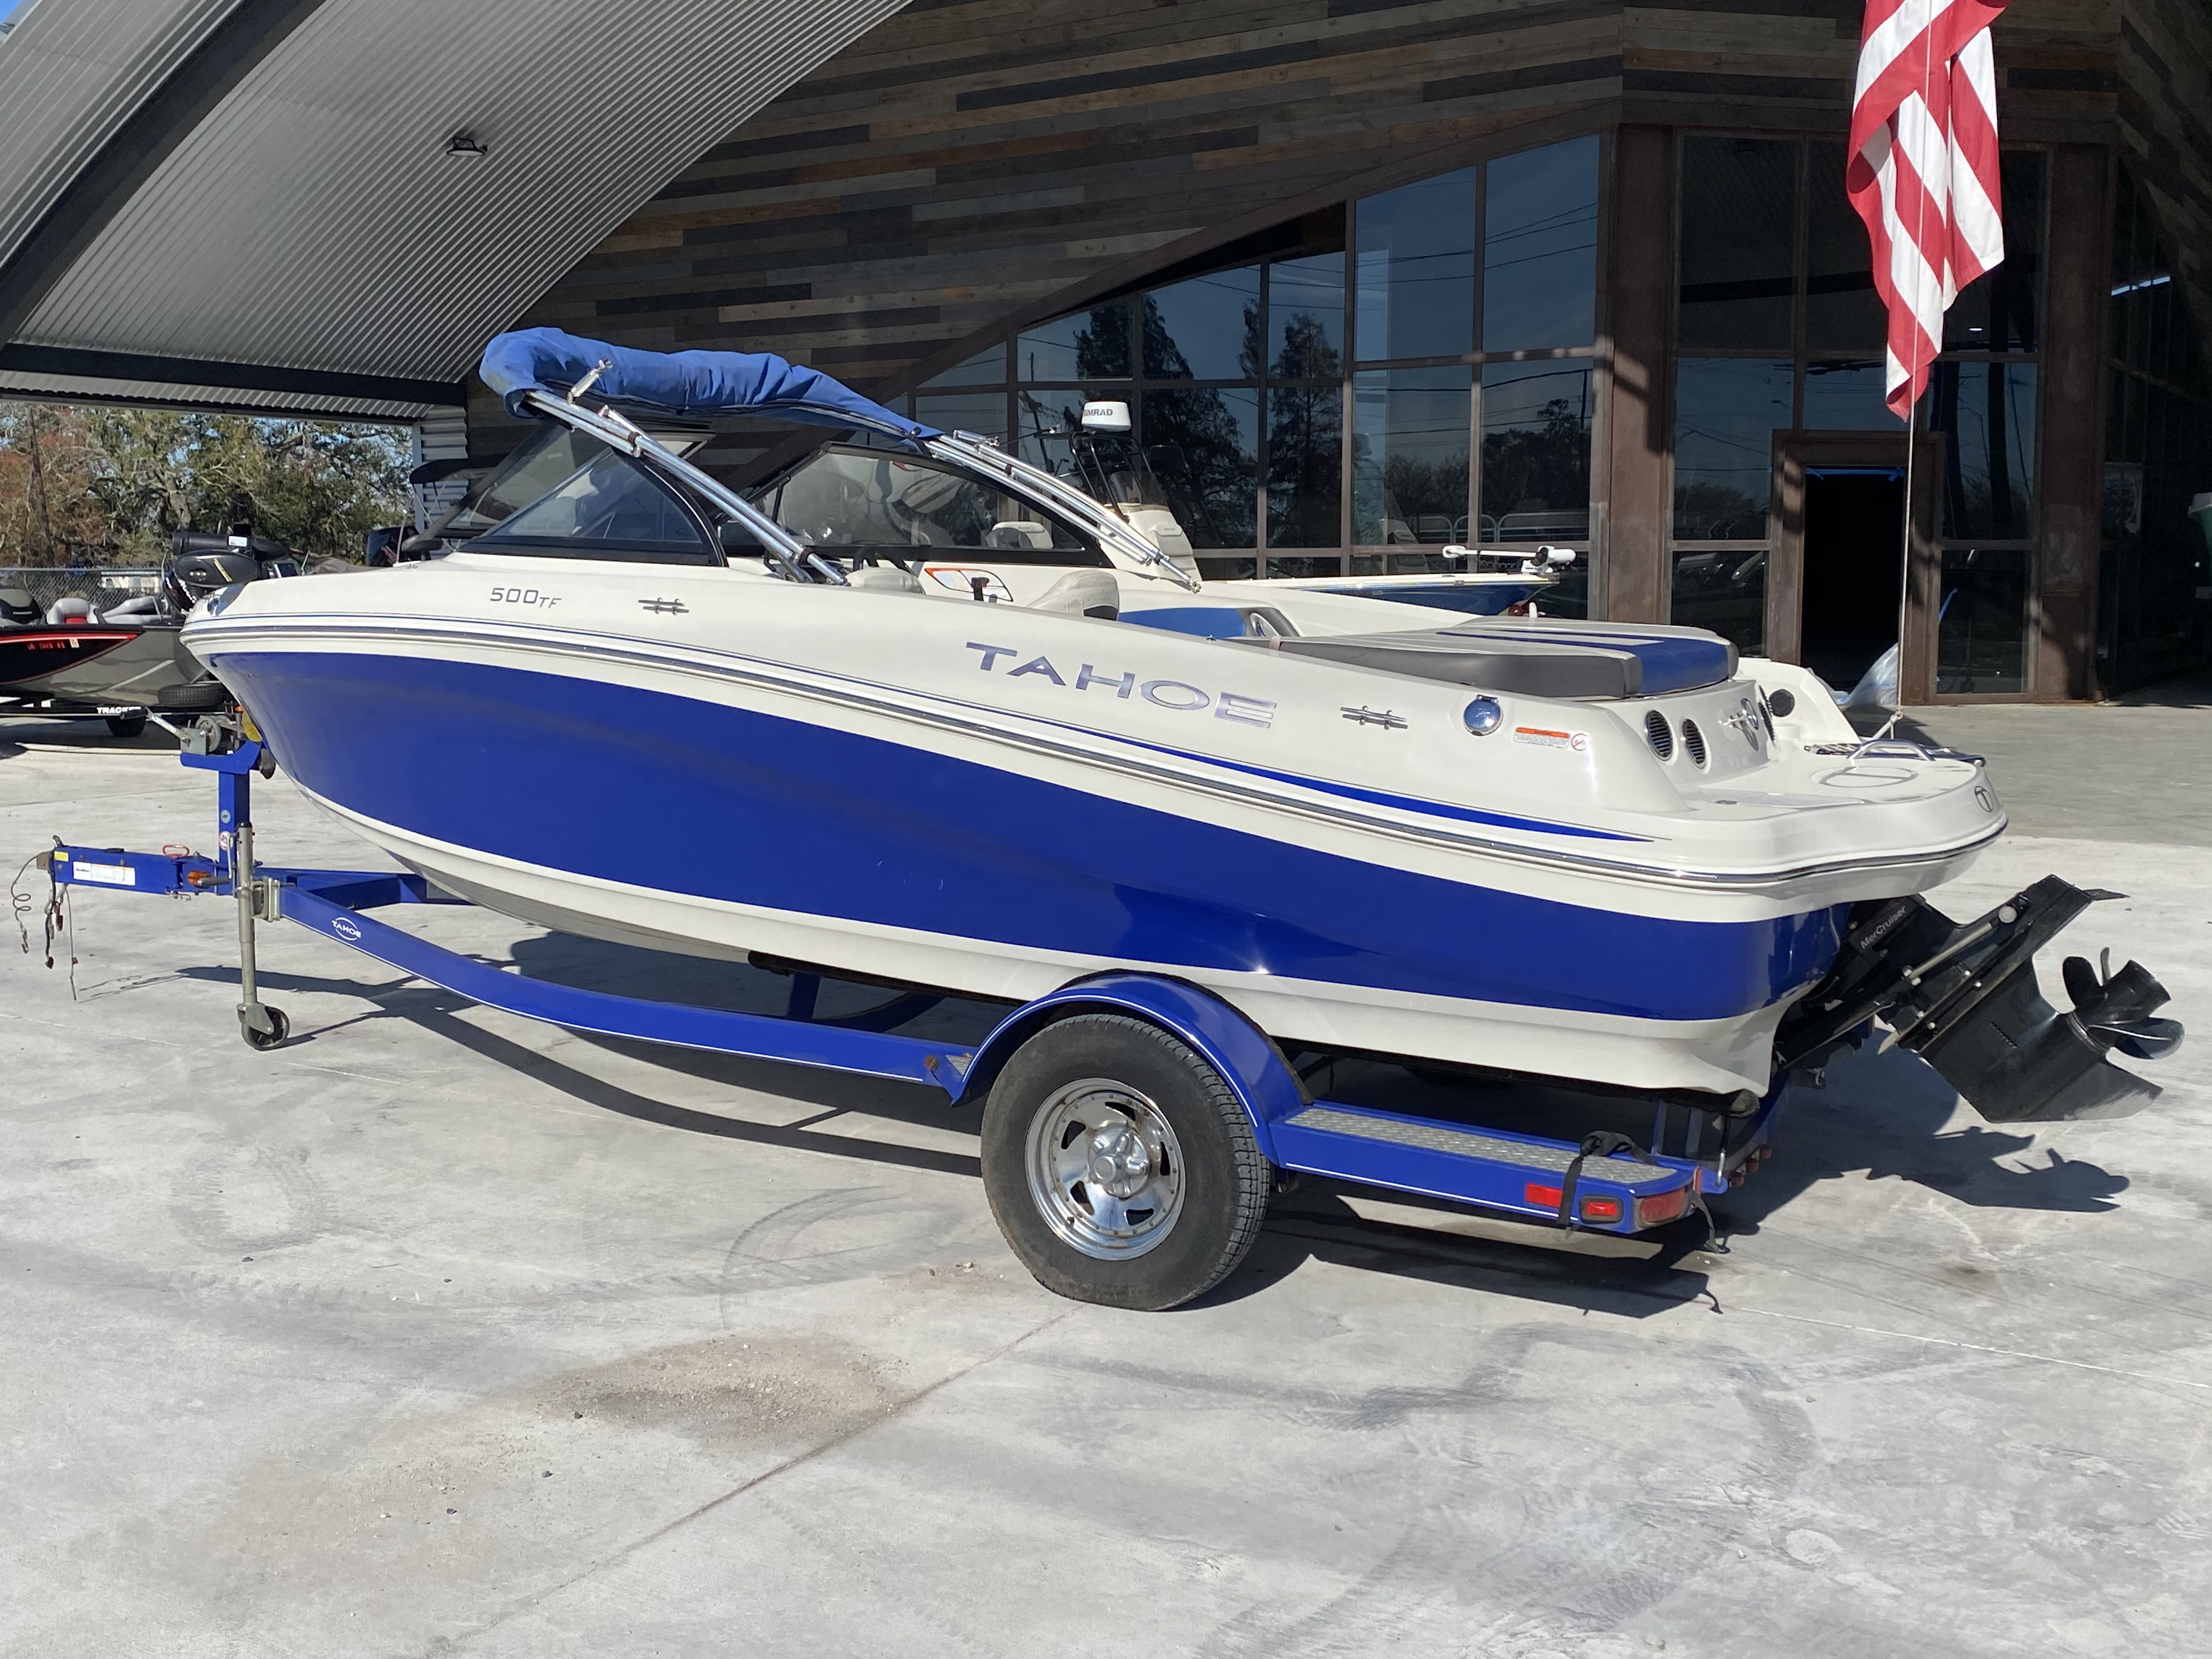 2015 Tahoe boat for sale, model of the boat is 500 TF & Image # 9 of 12